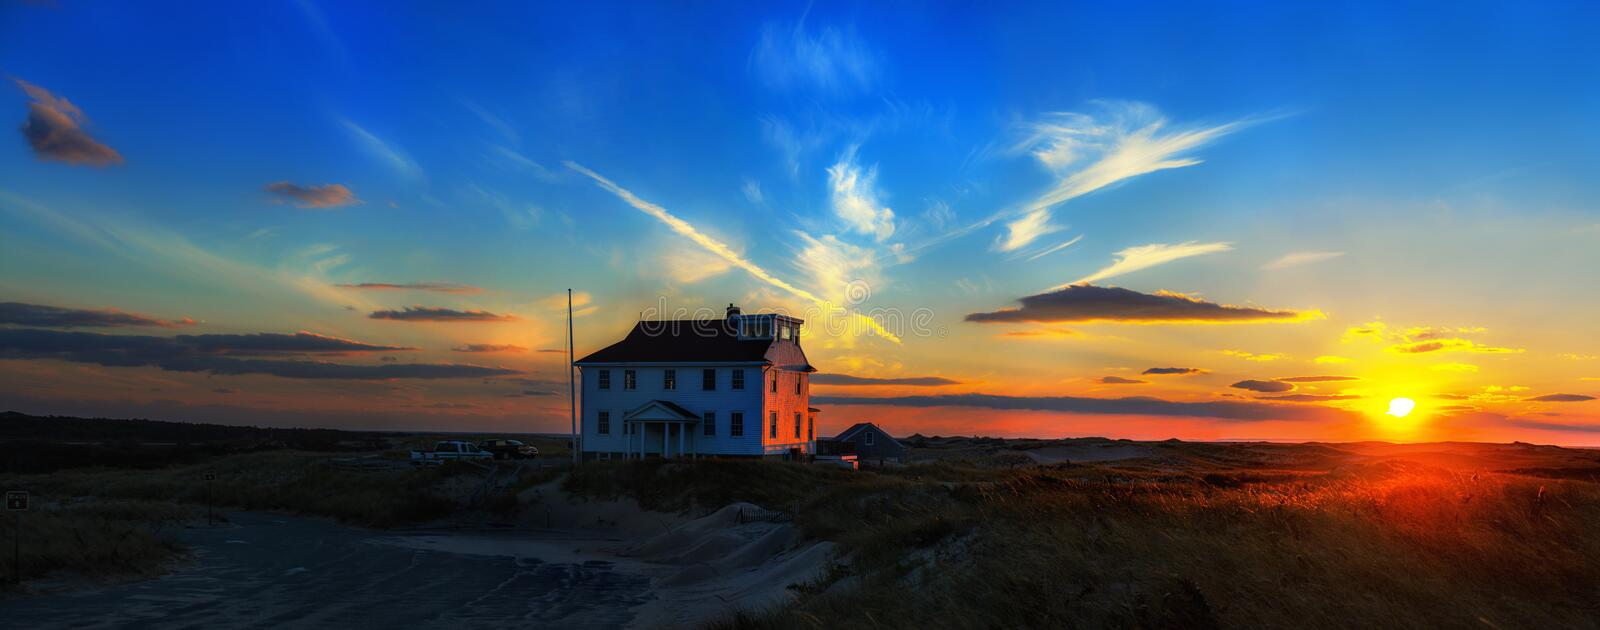 Isolated House at Cape Cod national Seashore, Massachusetts, Provincetown. USA. Cape Cod national Seashore, Massachusetts, Provincetown. USA stock image